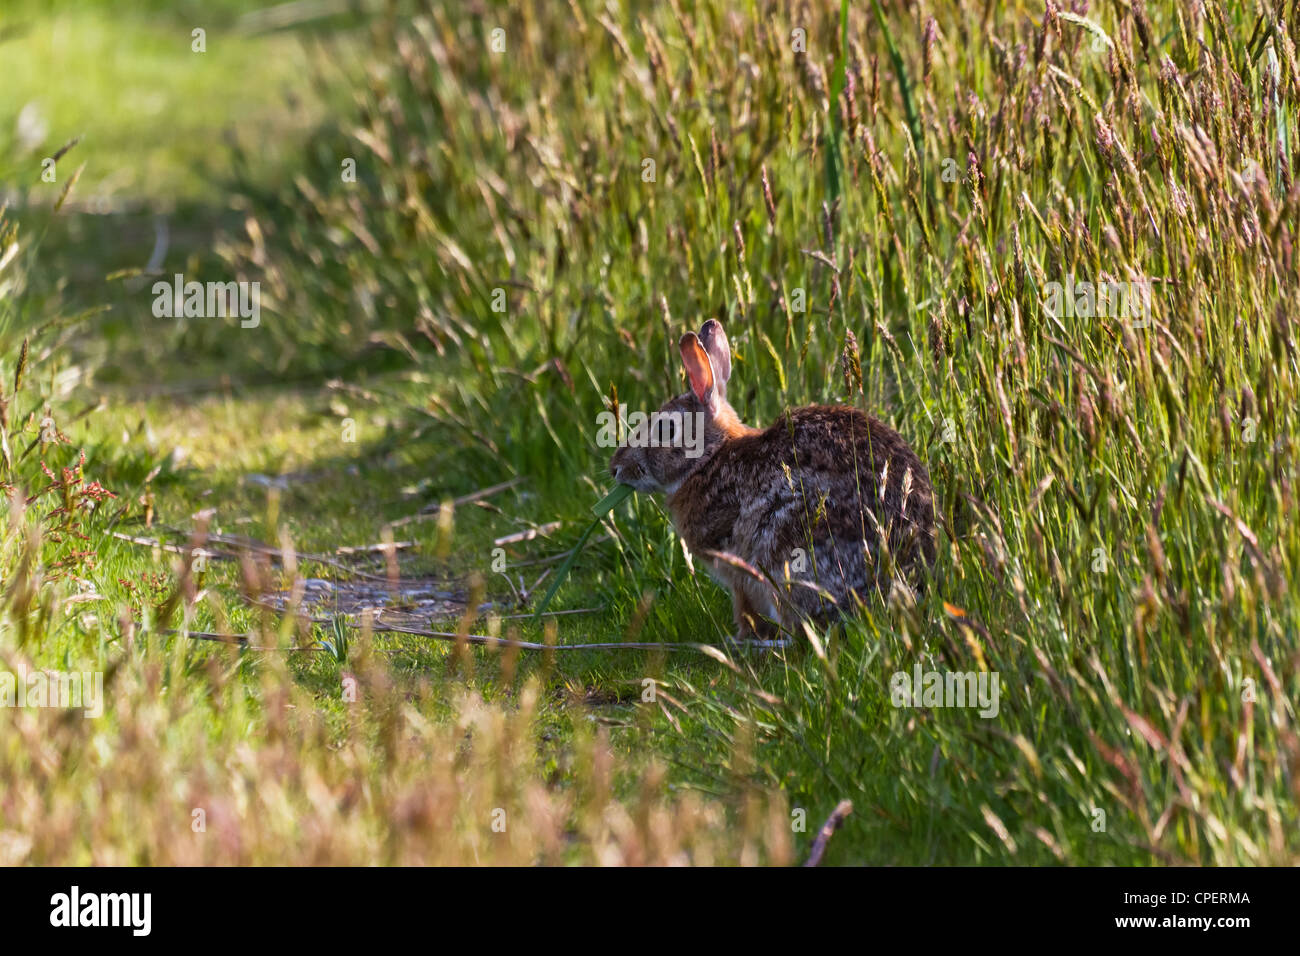 Hare and grass field - Stock Image